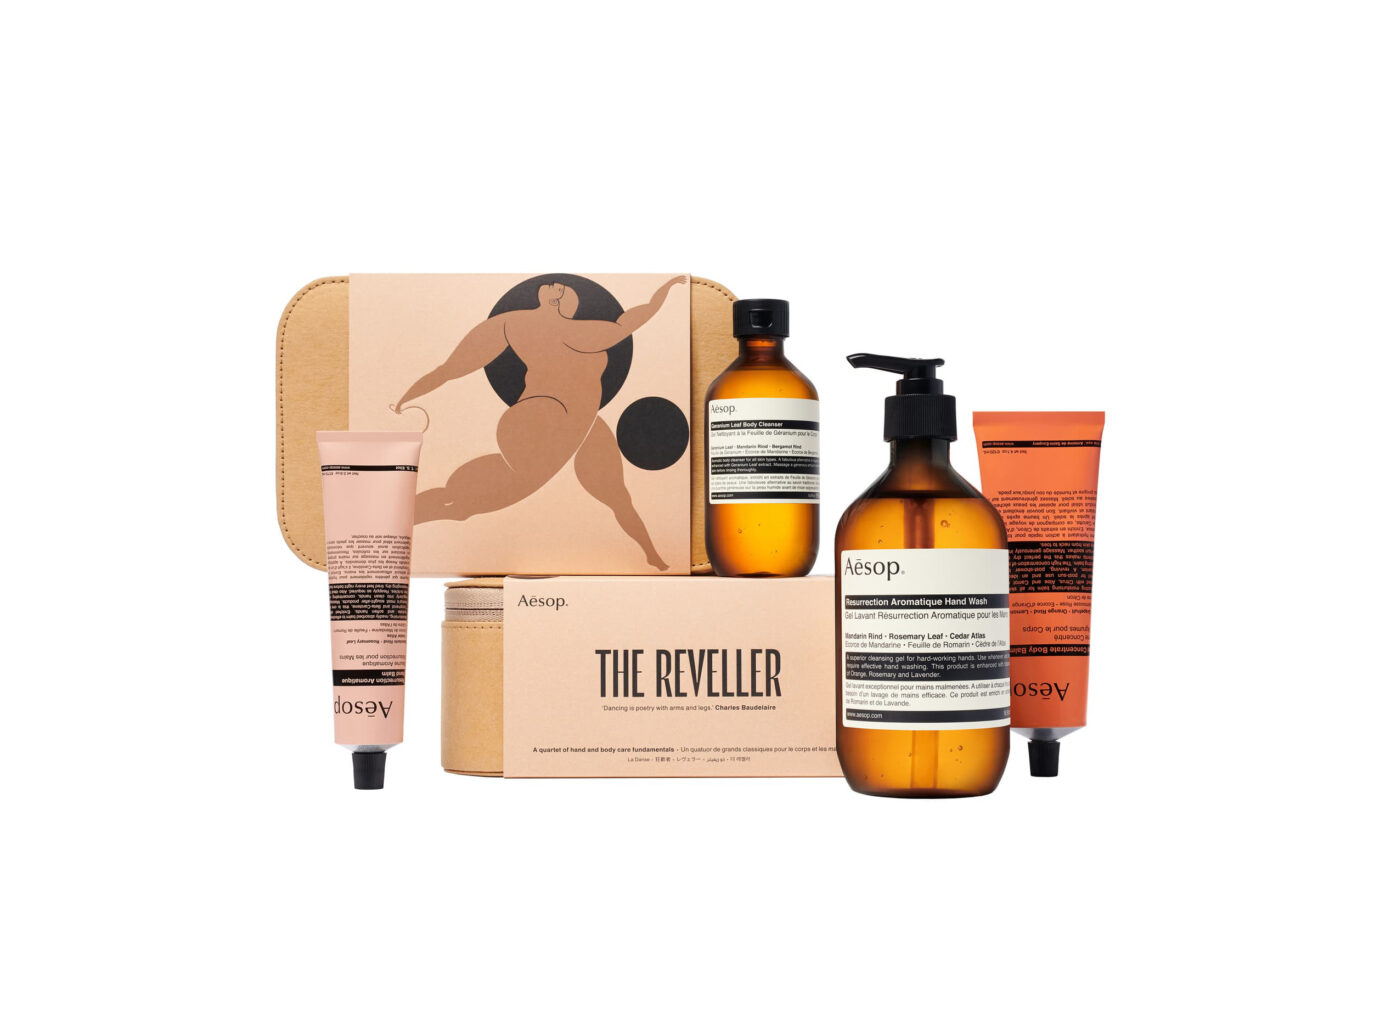 Aesop The Reveller Kit